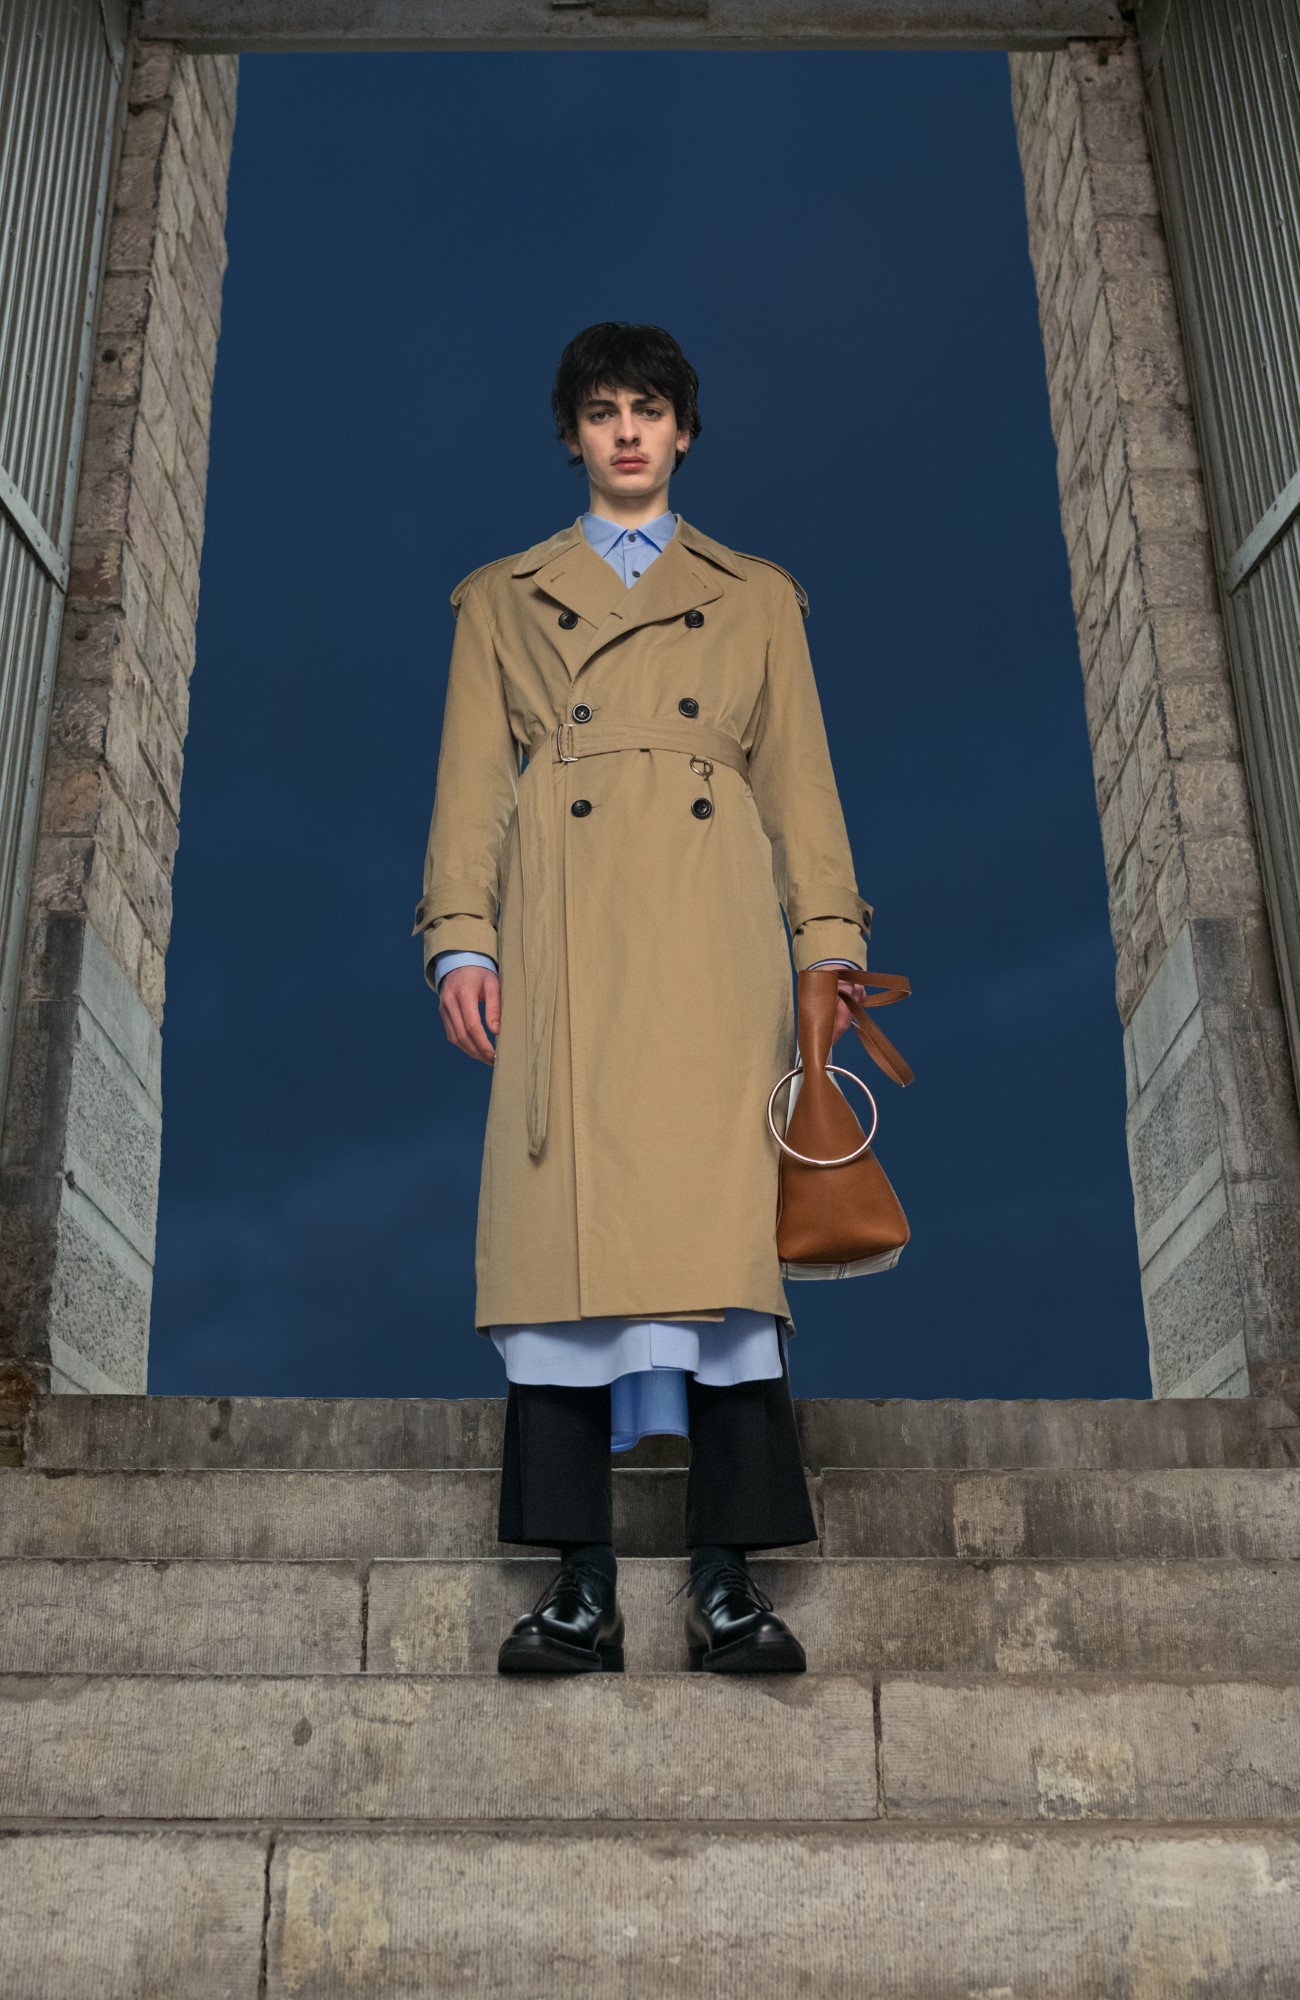 Dries Van Noten - Automne-Hiver 2021 - Paris Fashion Week